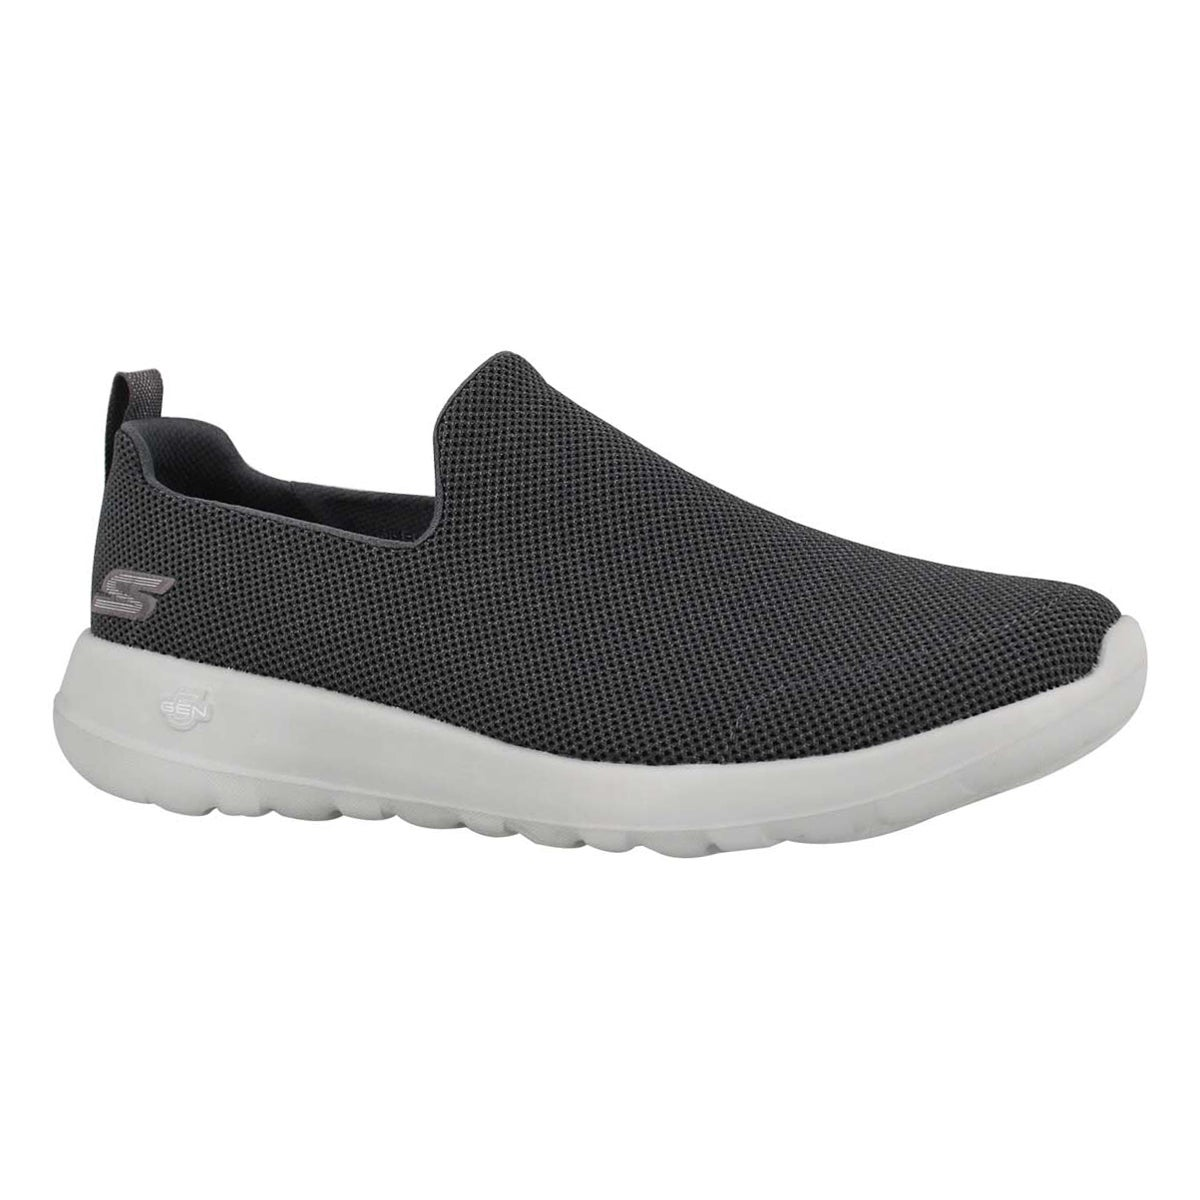 Men's GOwalk MAX charcoal slip on shoes